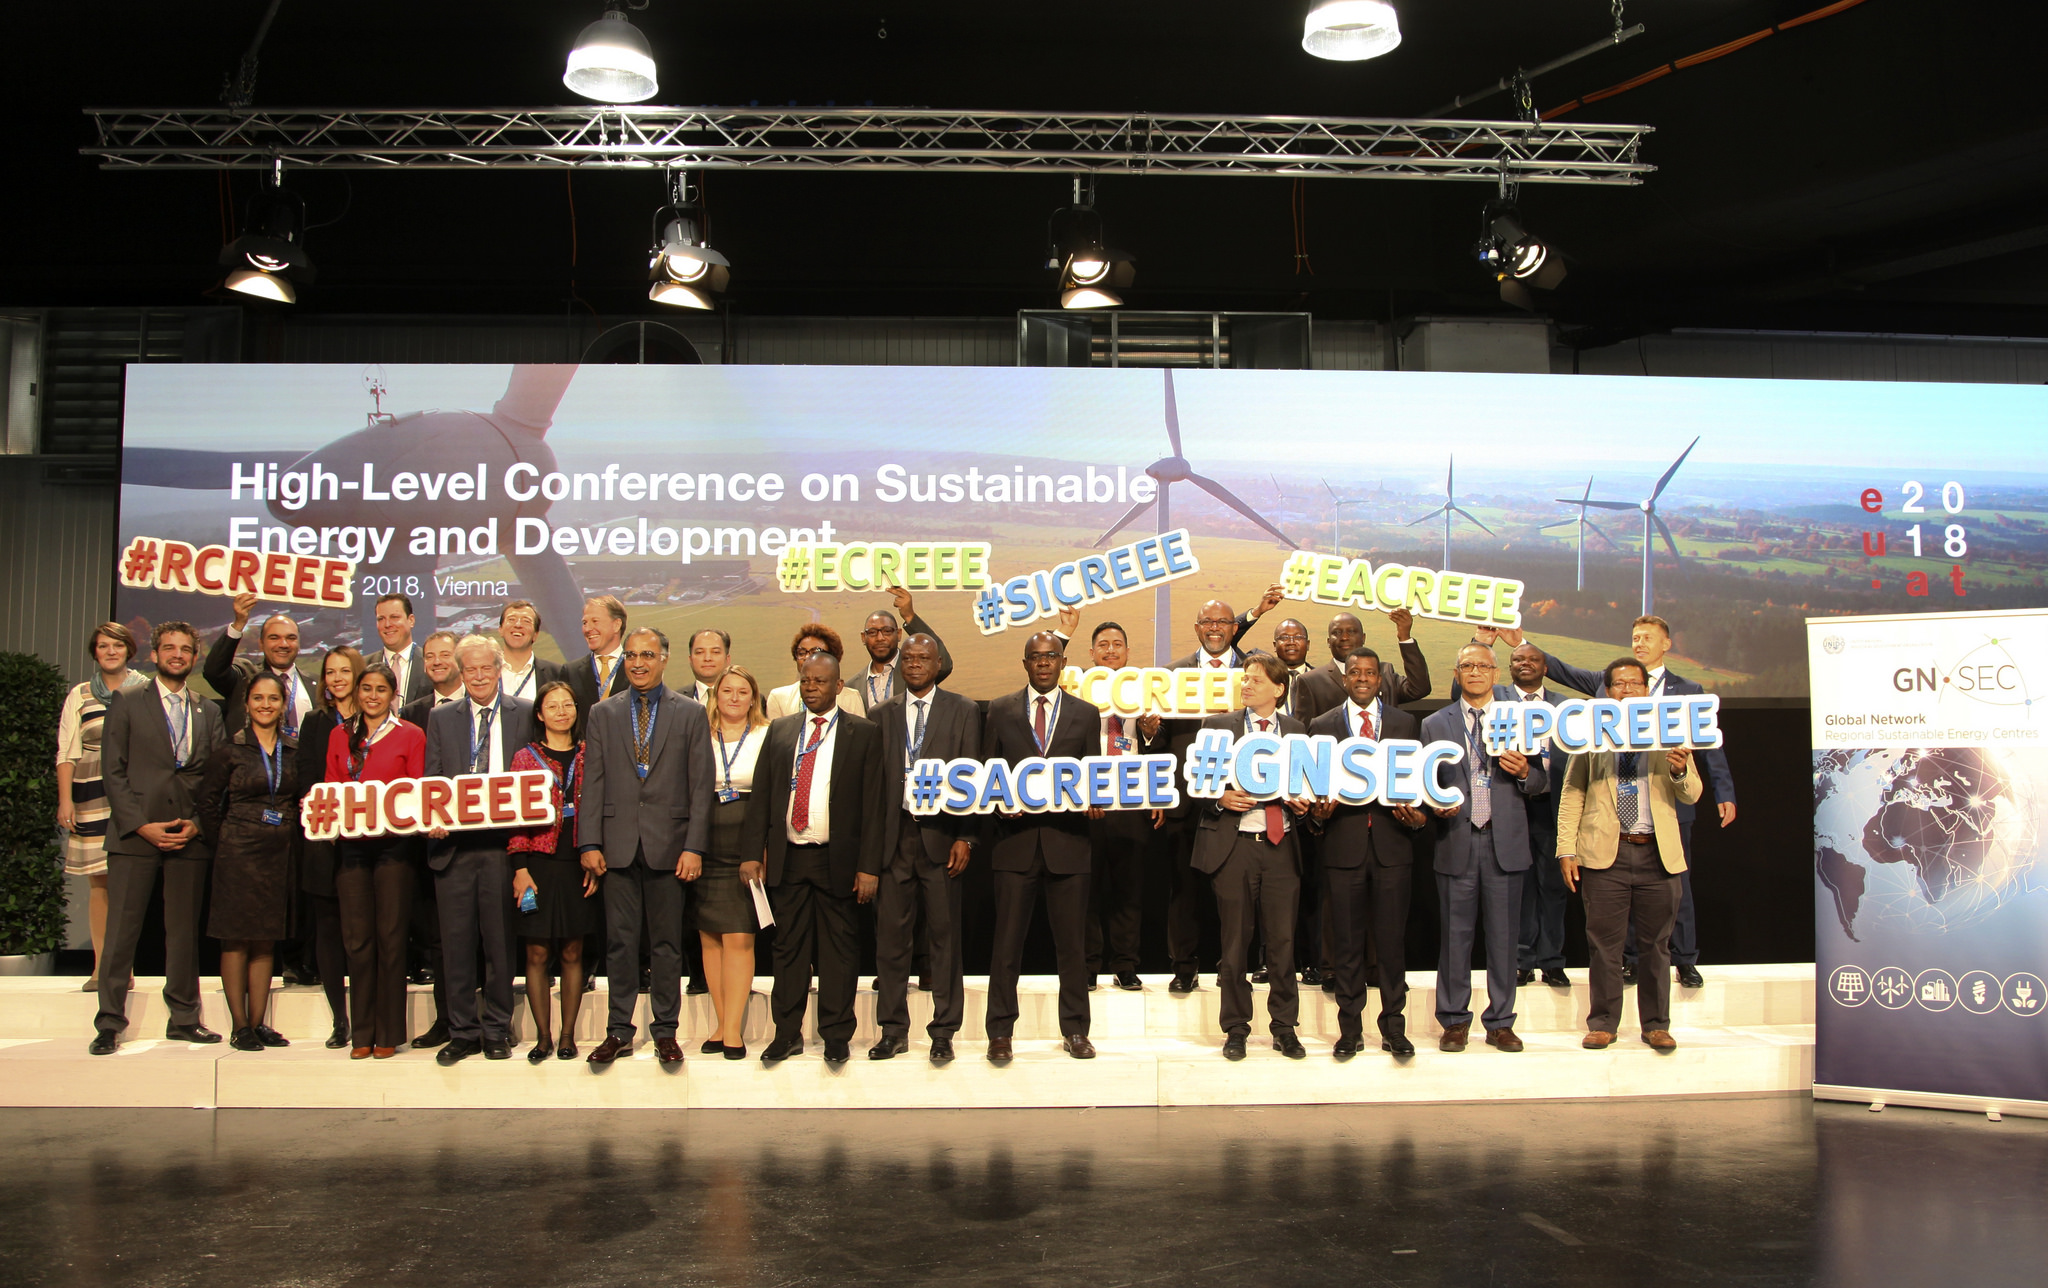 European Union voices support for Global Network of Regional Sustainable Energy Centres